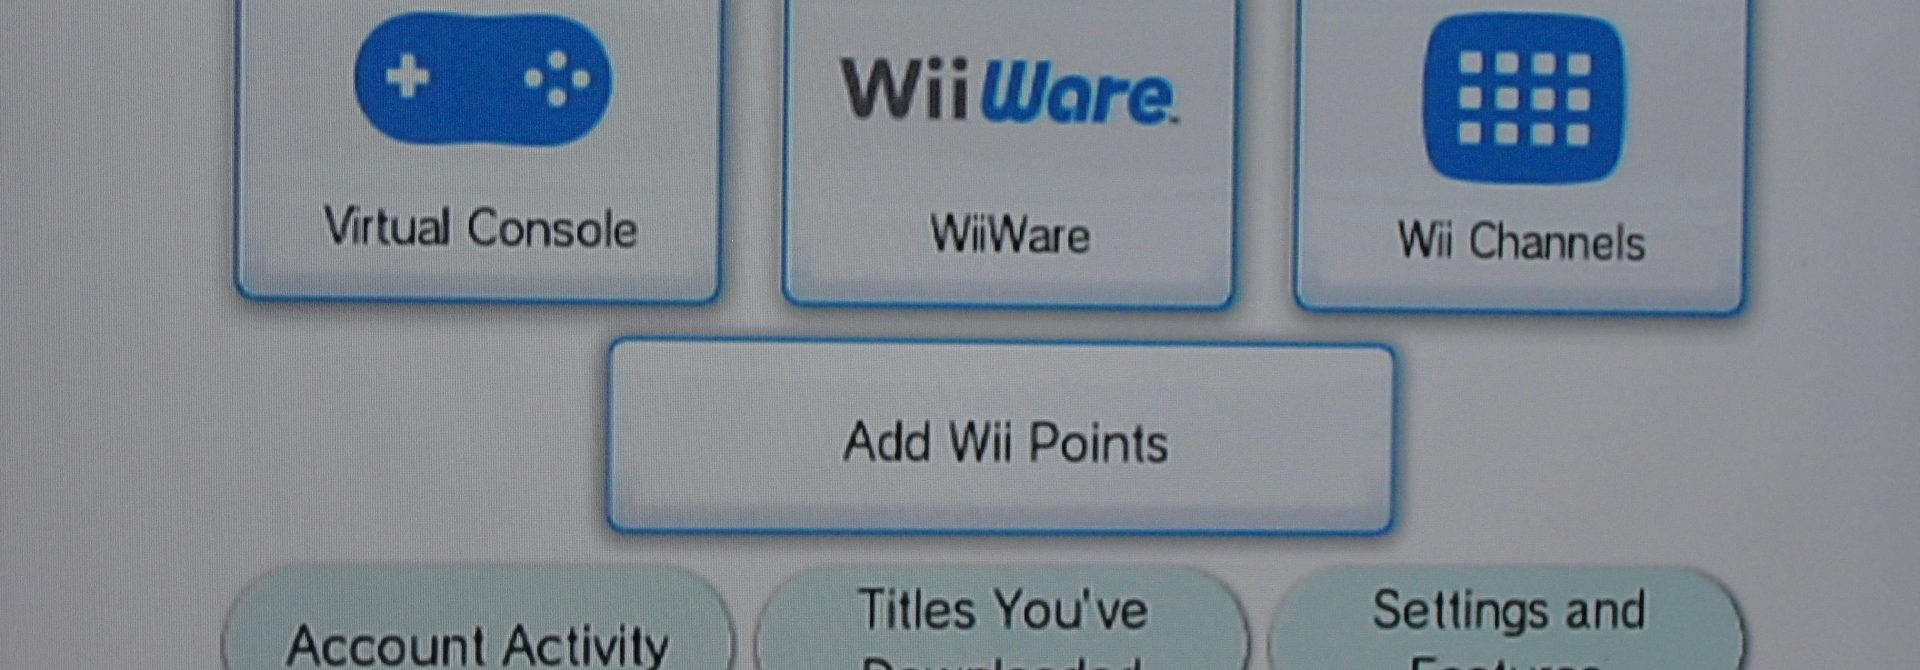 Wii Emulator, Dolphin, Can Now Access Wii Shop Channel